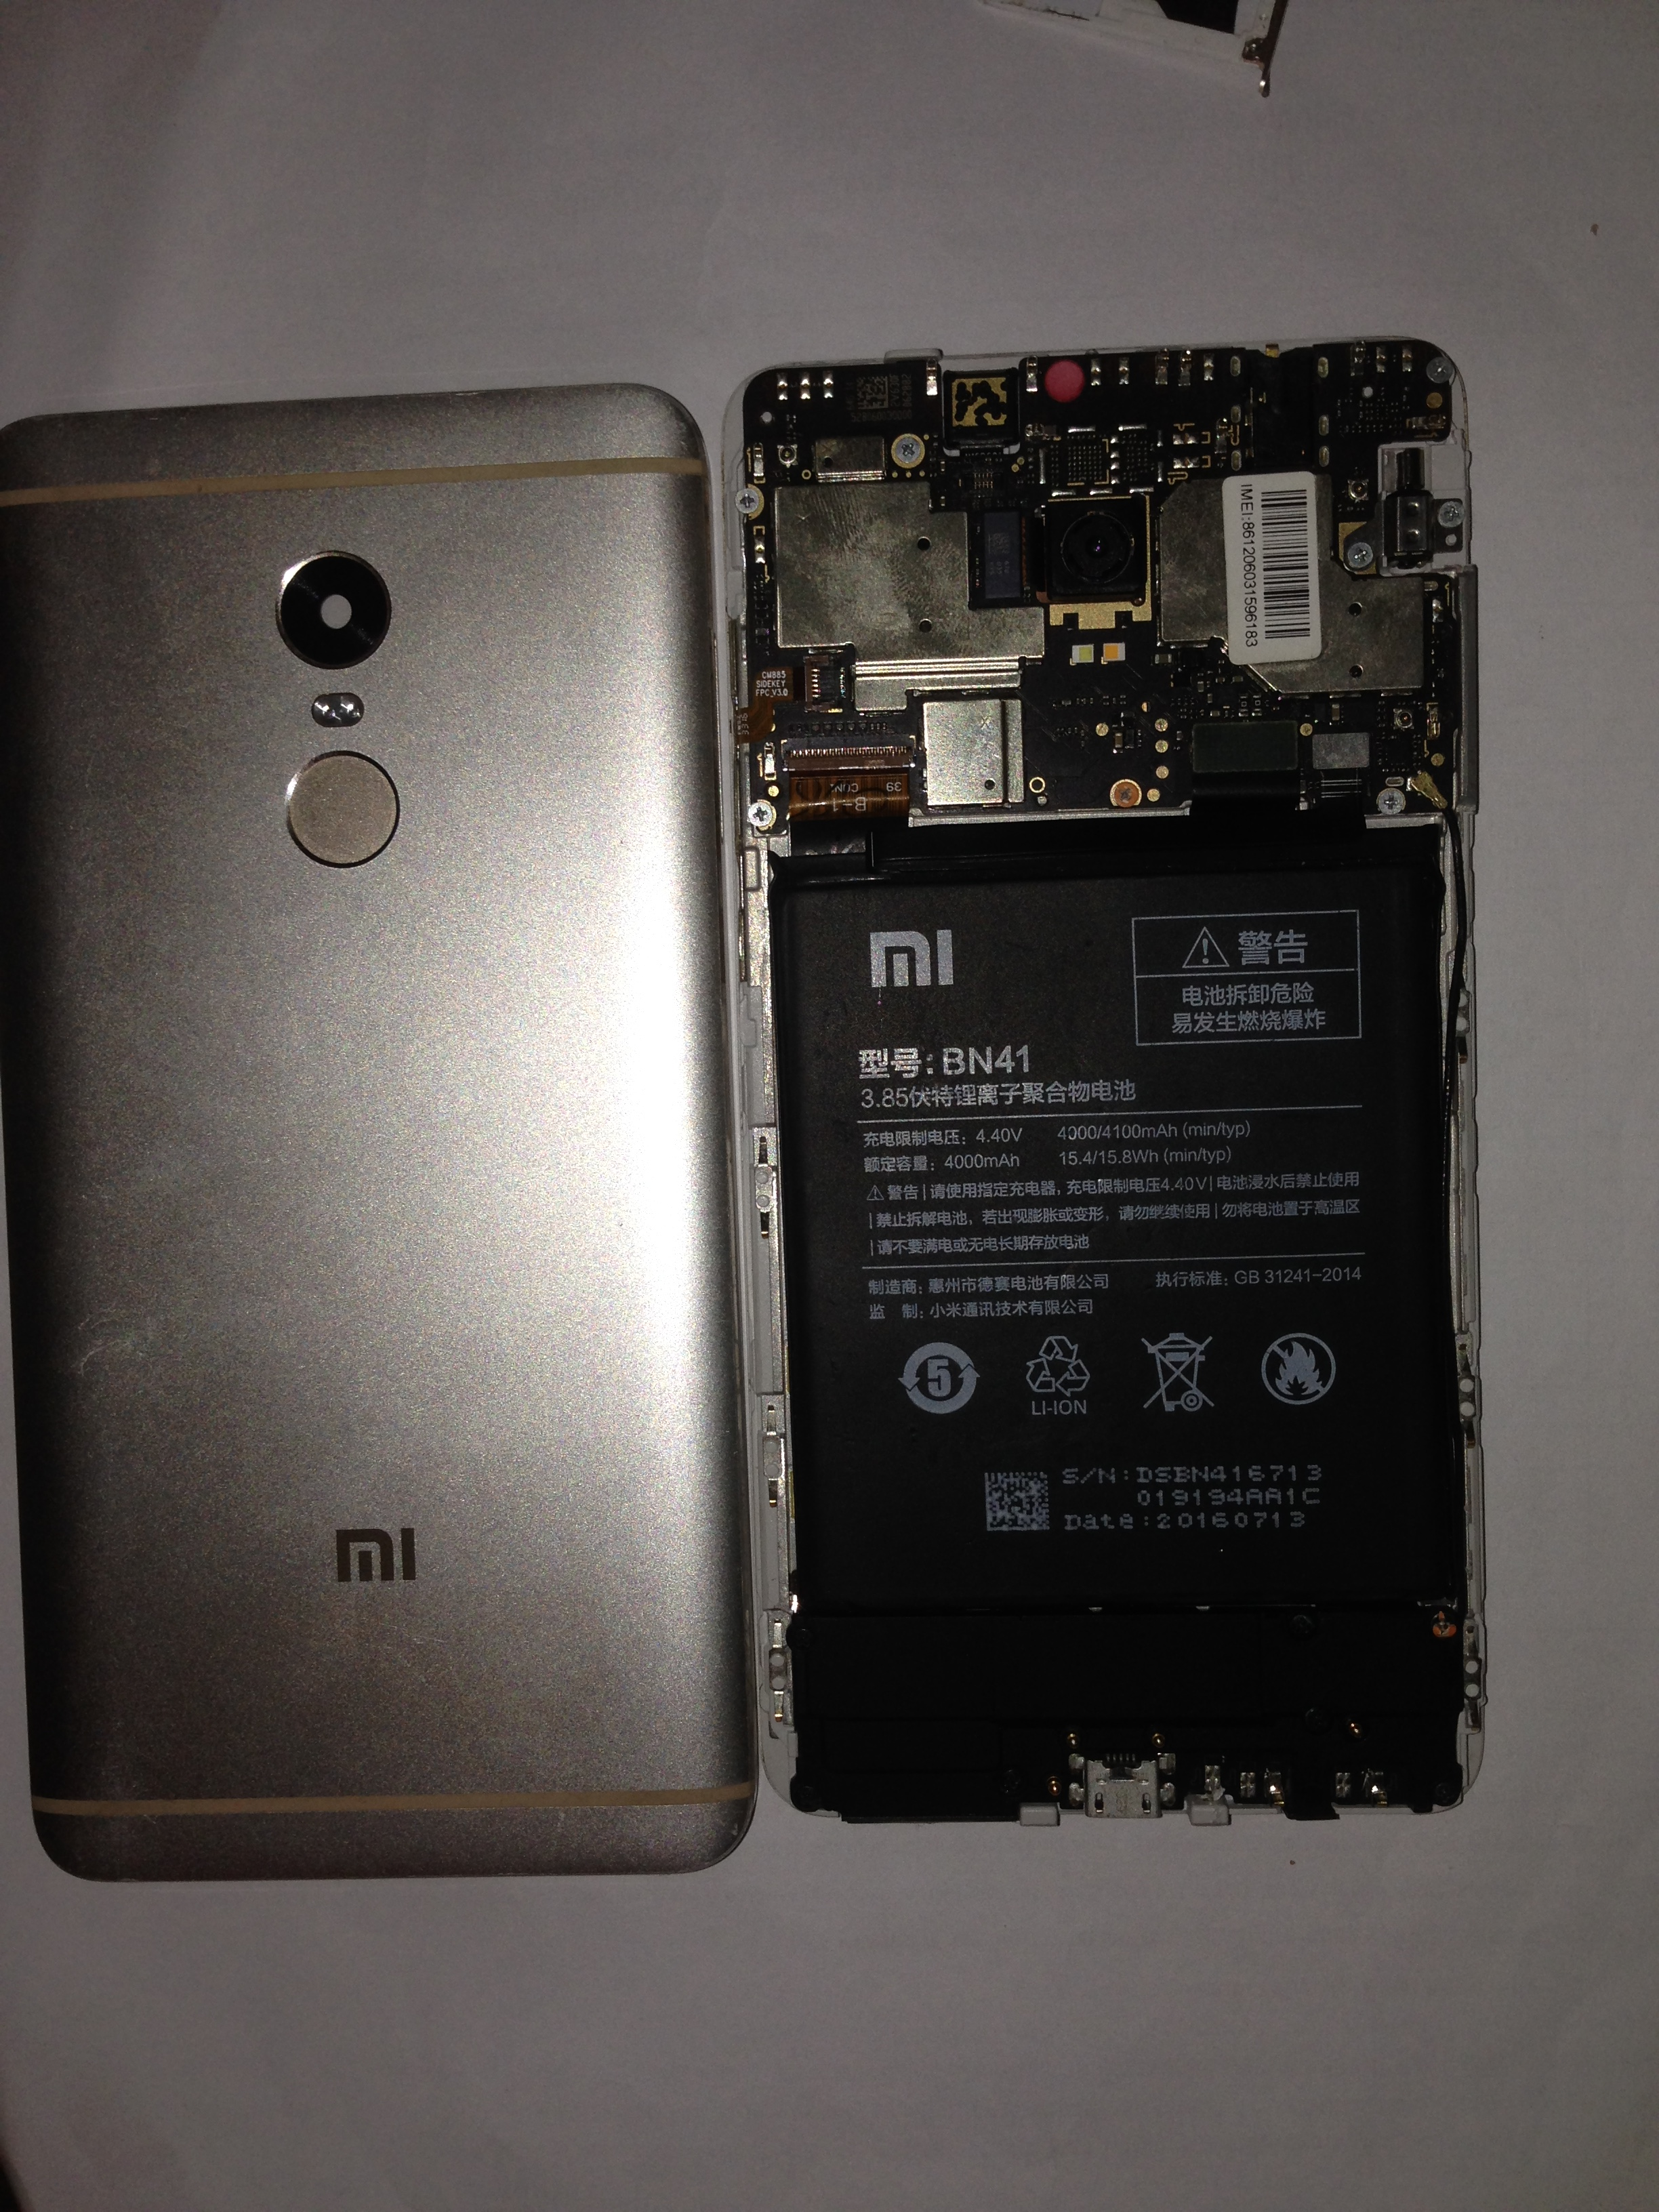 How To Skip Bypass The Locked Mi Account On Redmi Note 4 Mtk How To Repair Imei Redmi Note 4